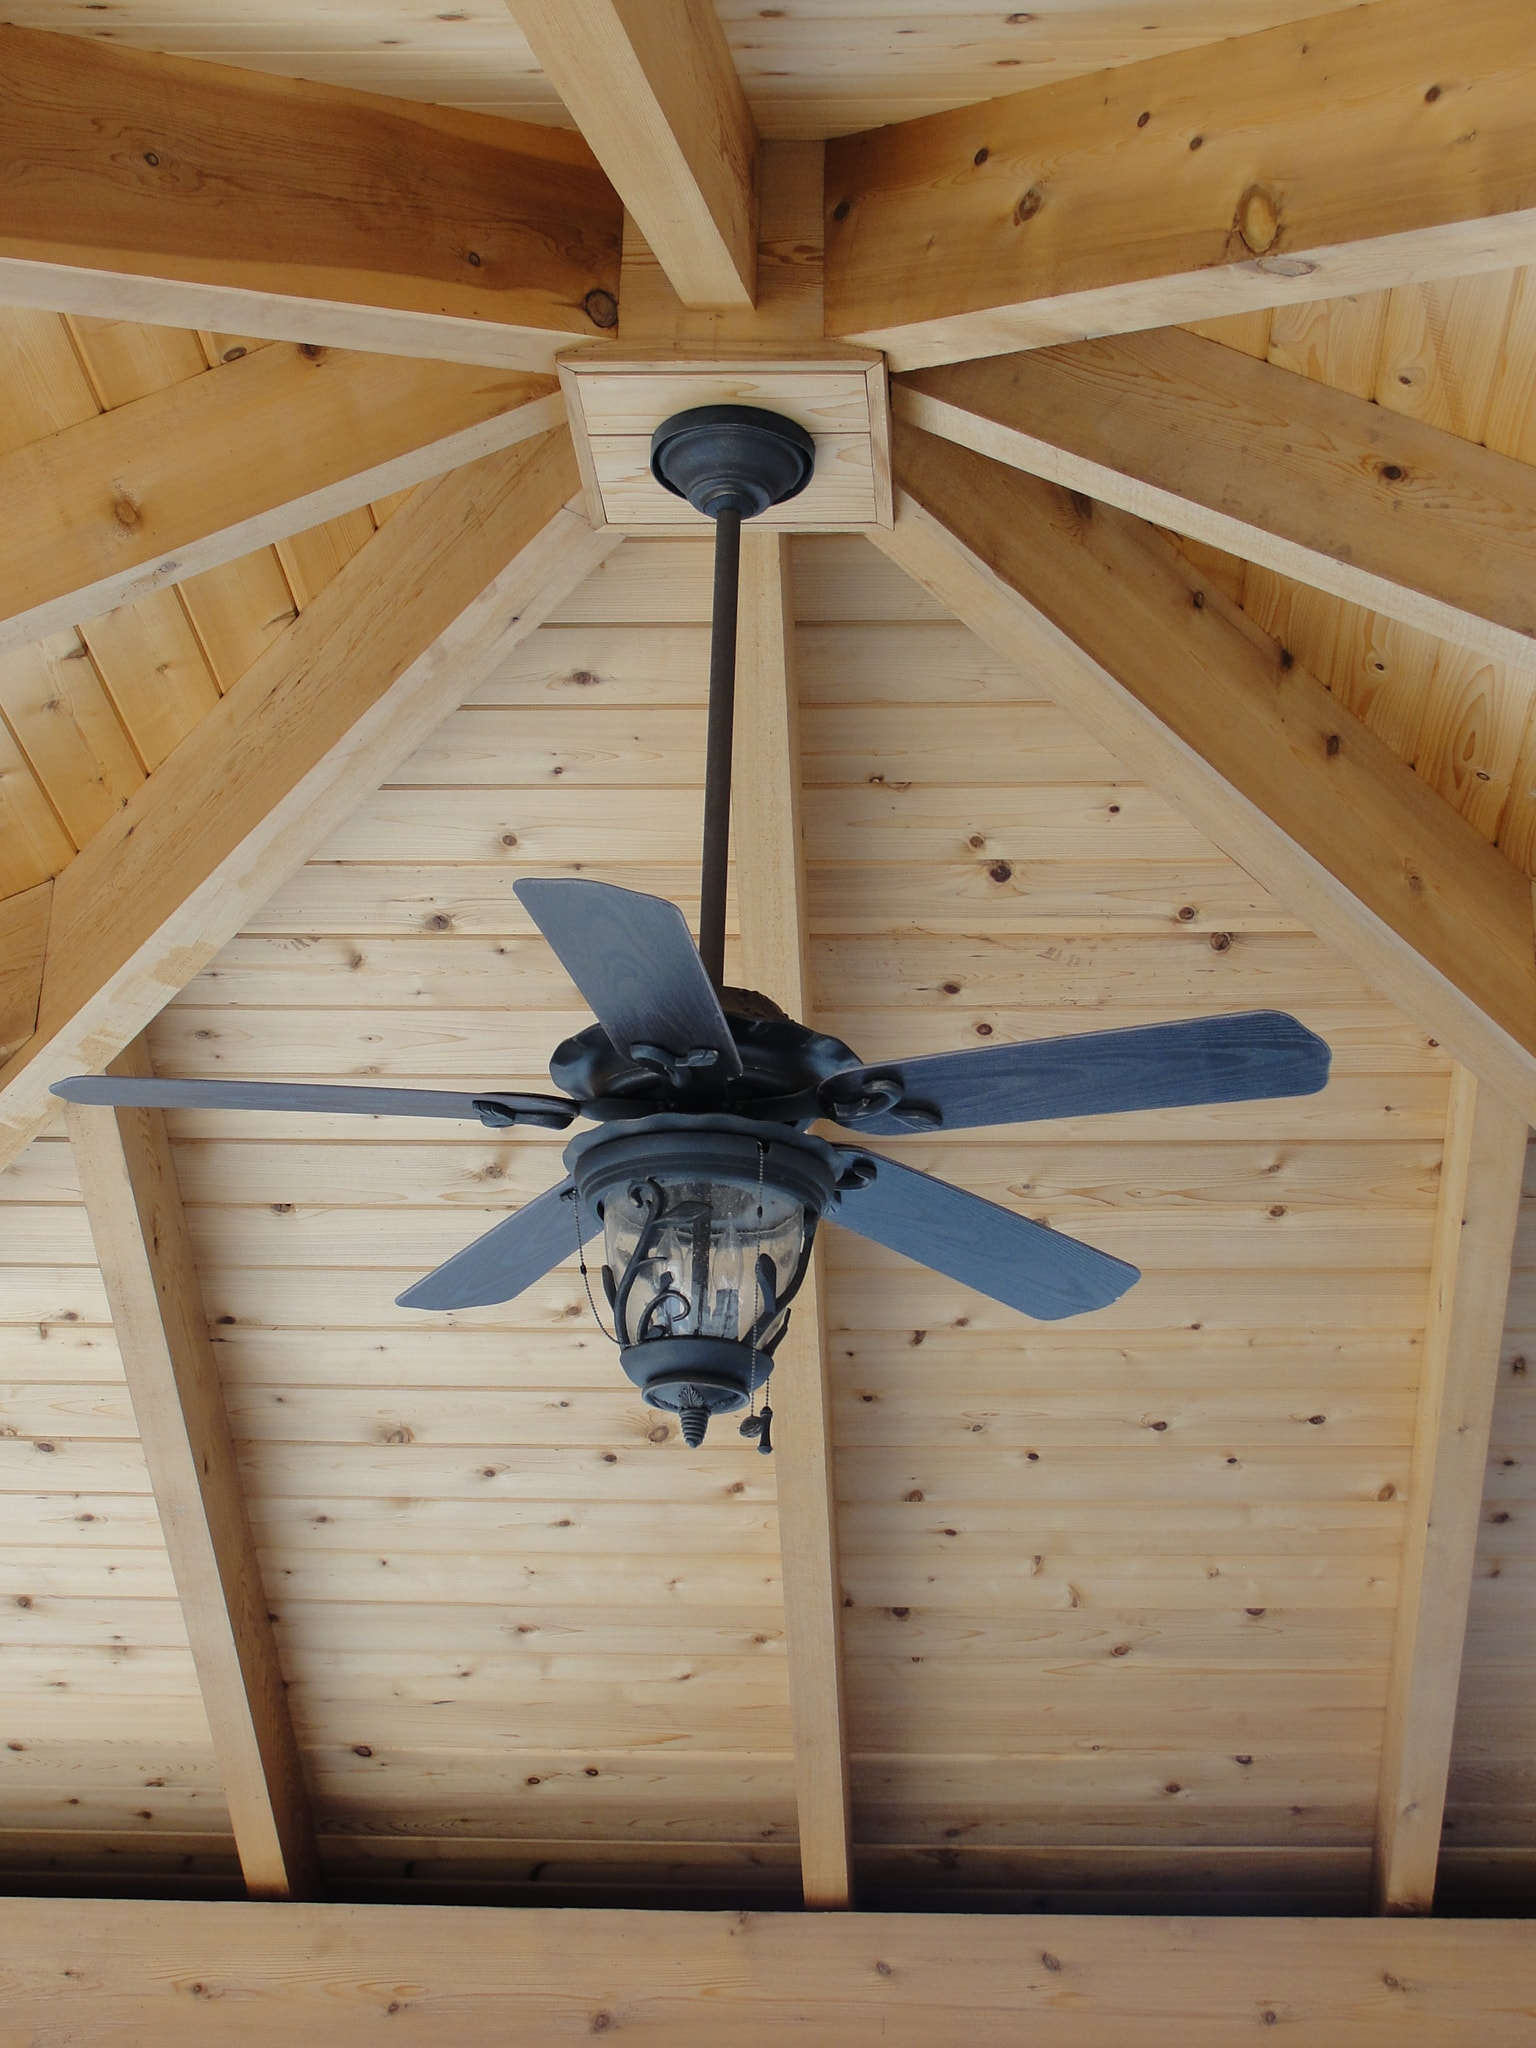 Andrew Day Electric overhead fans upgrades